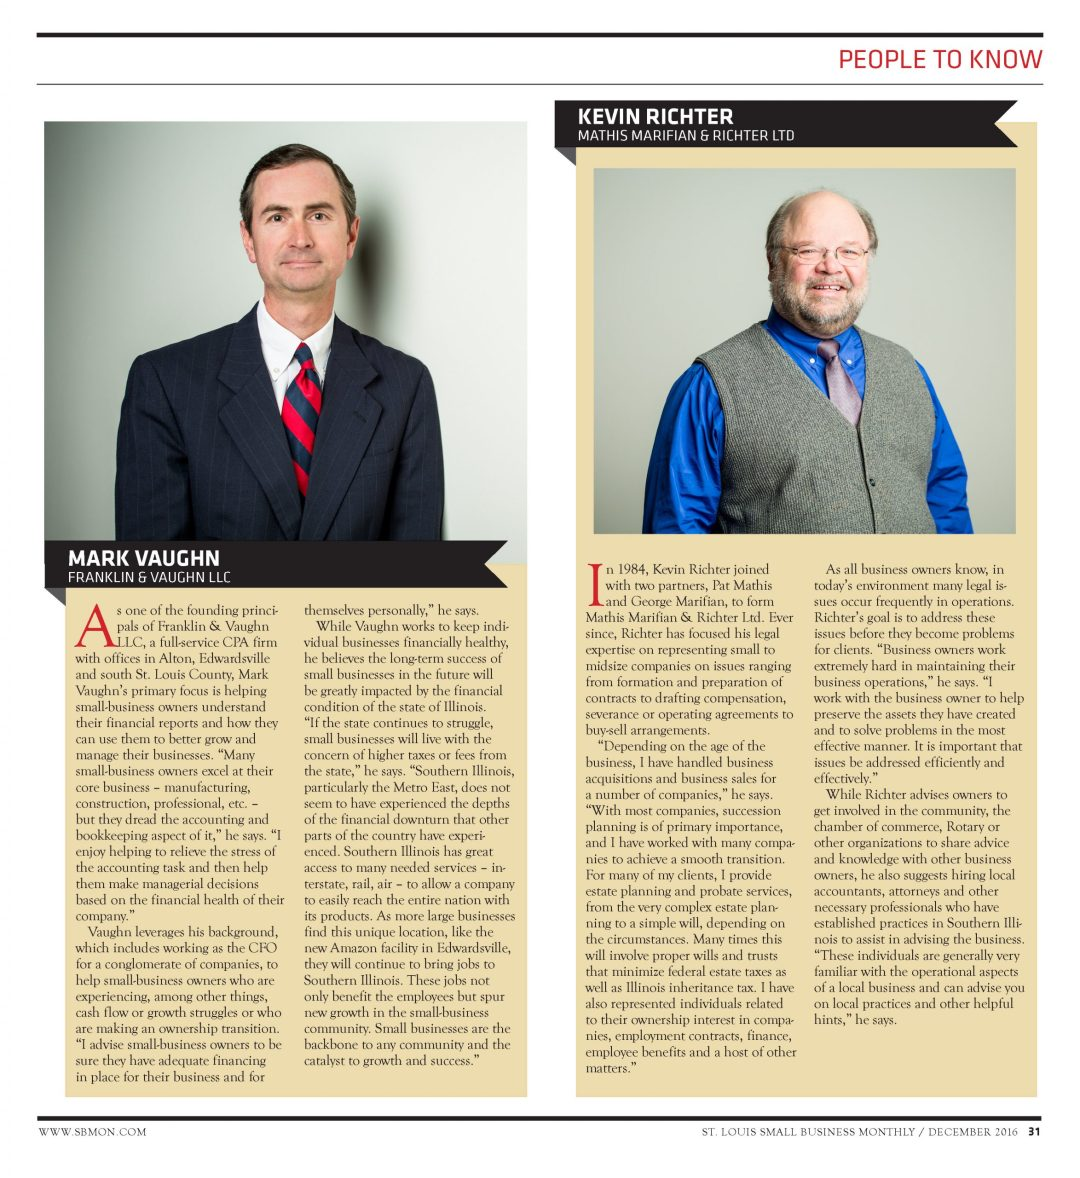 Mark Vaughn featured in St. Louis Small Business Monthly People You Should Know